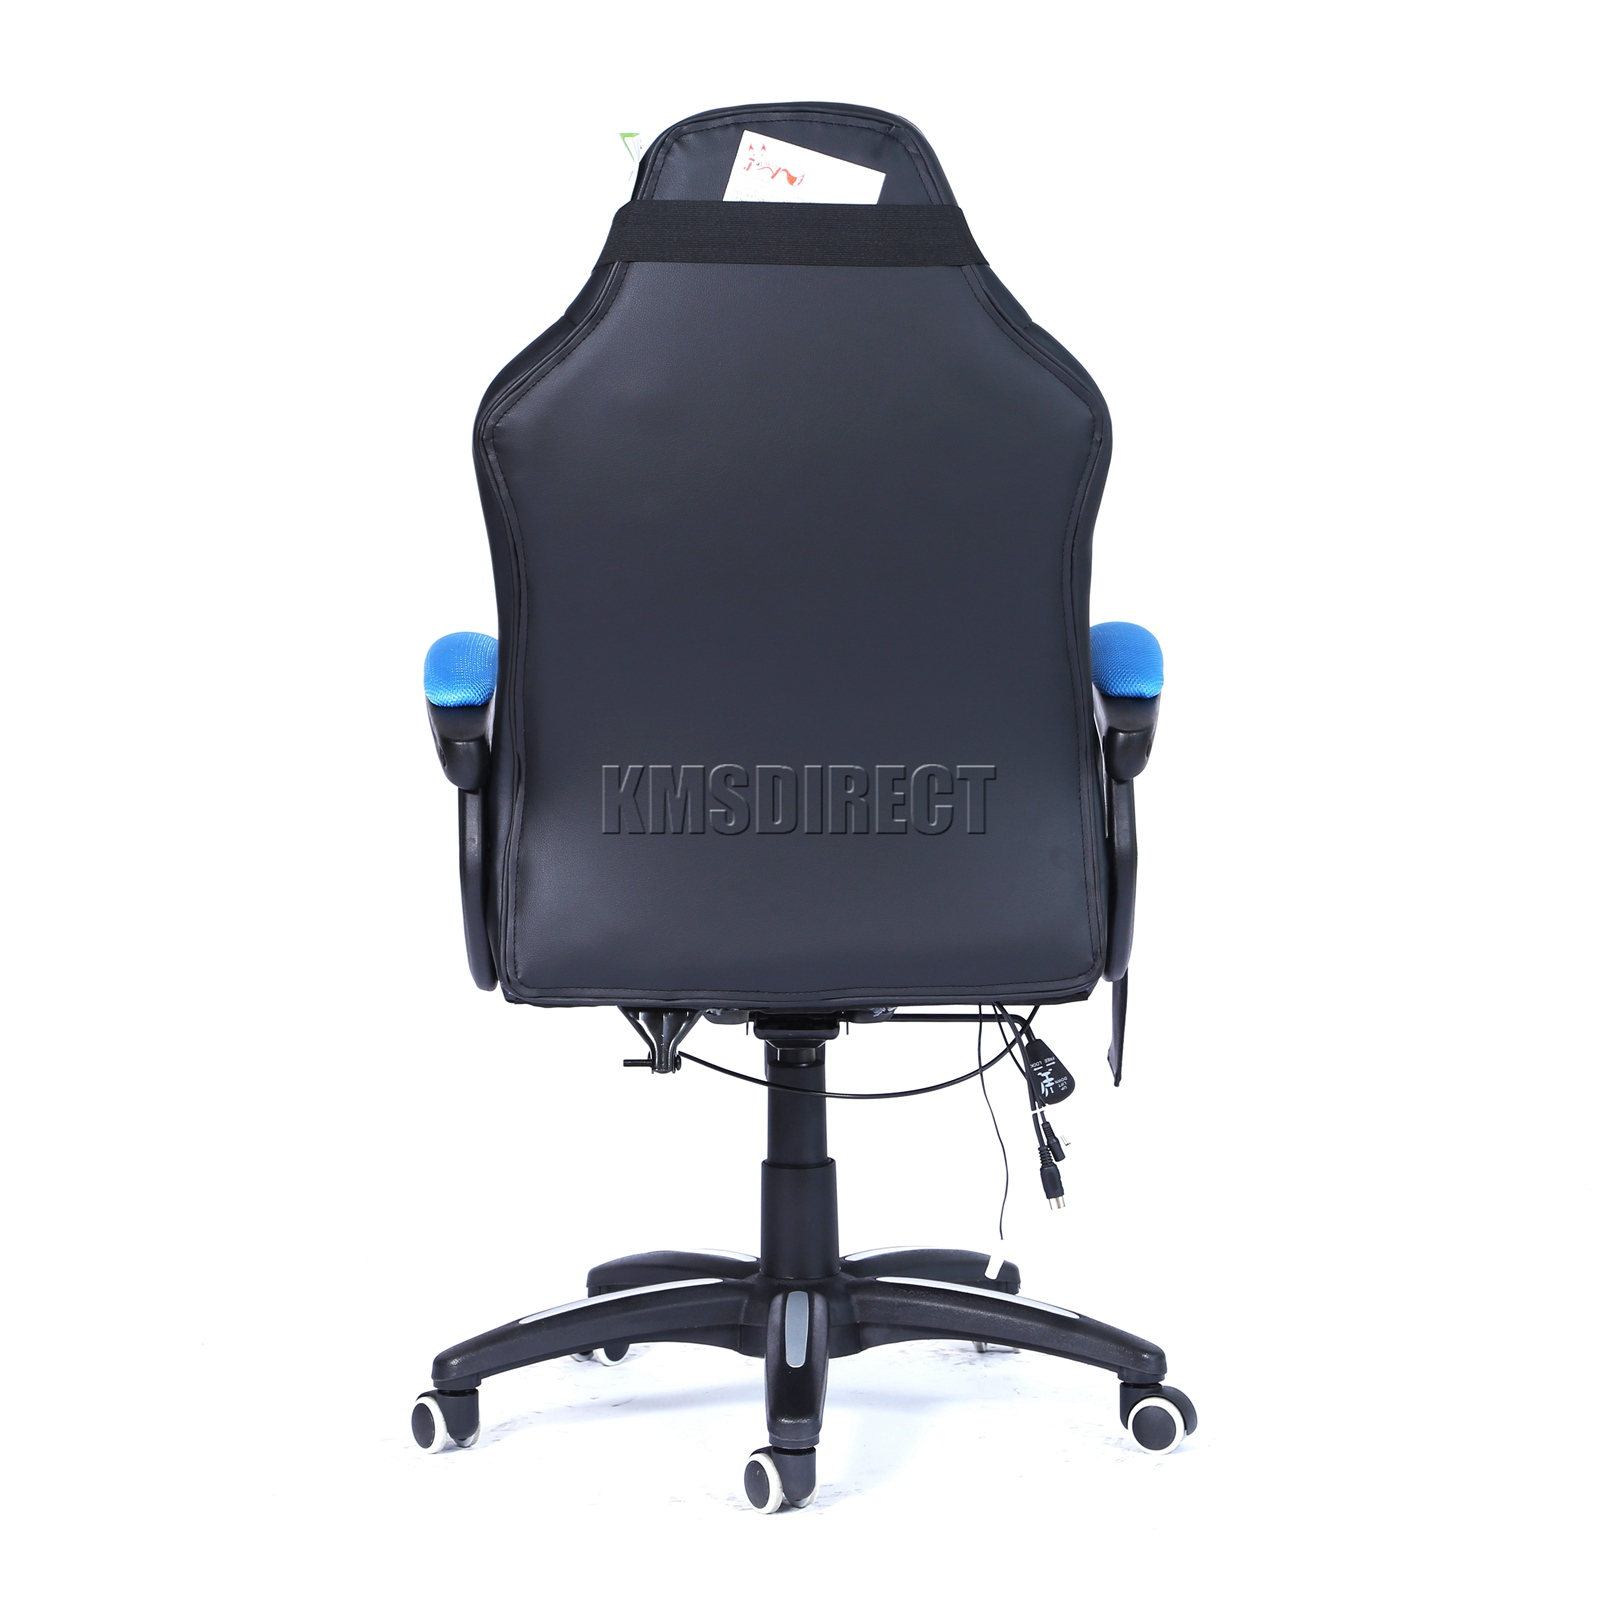 WestWood-Heated-Massage-Office-Chair-Gaming-amp-Computer-Recliner-Swivel-MC09 thumbnail 18